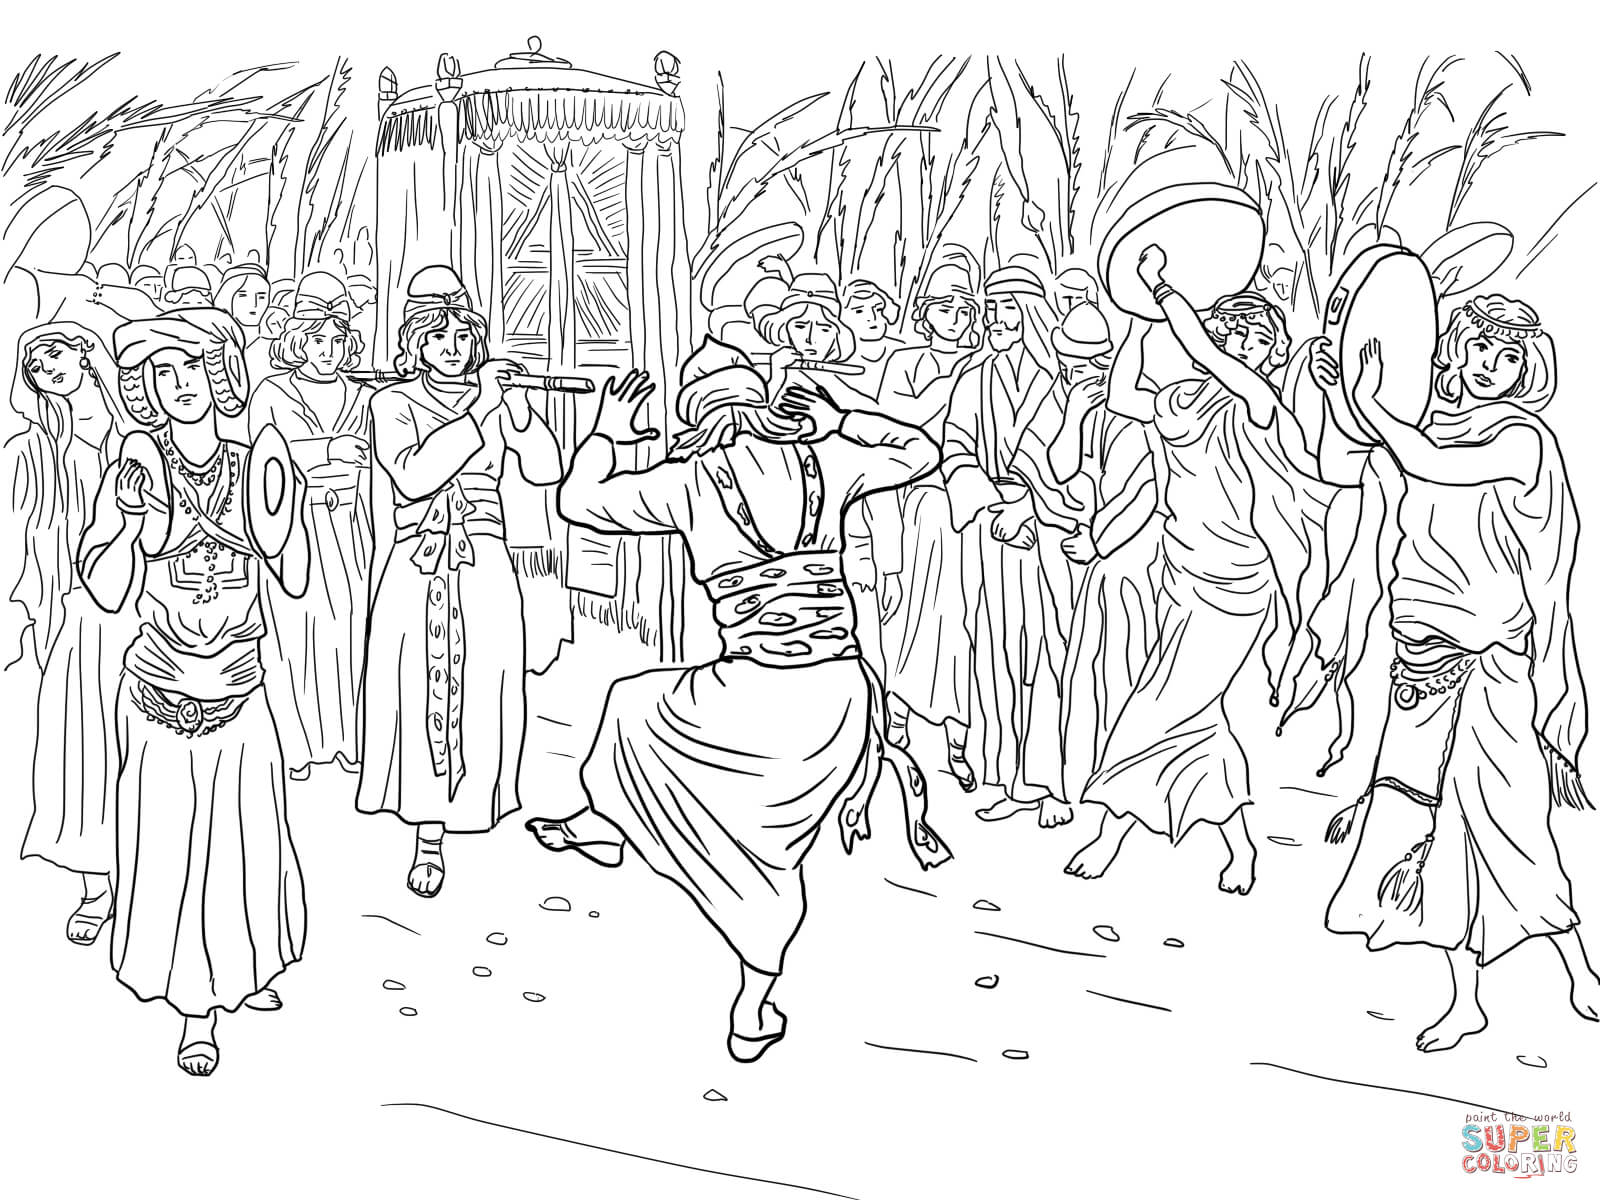 King David Dancing Before the Ark of the Covenant coloring